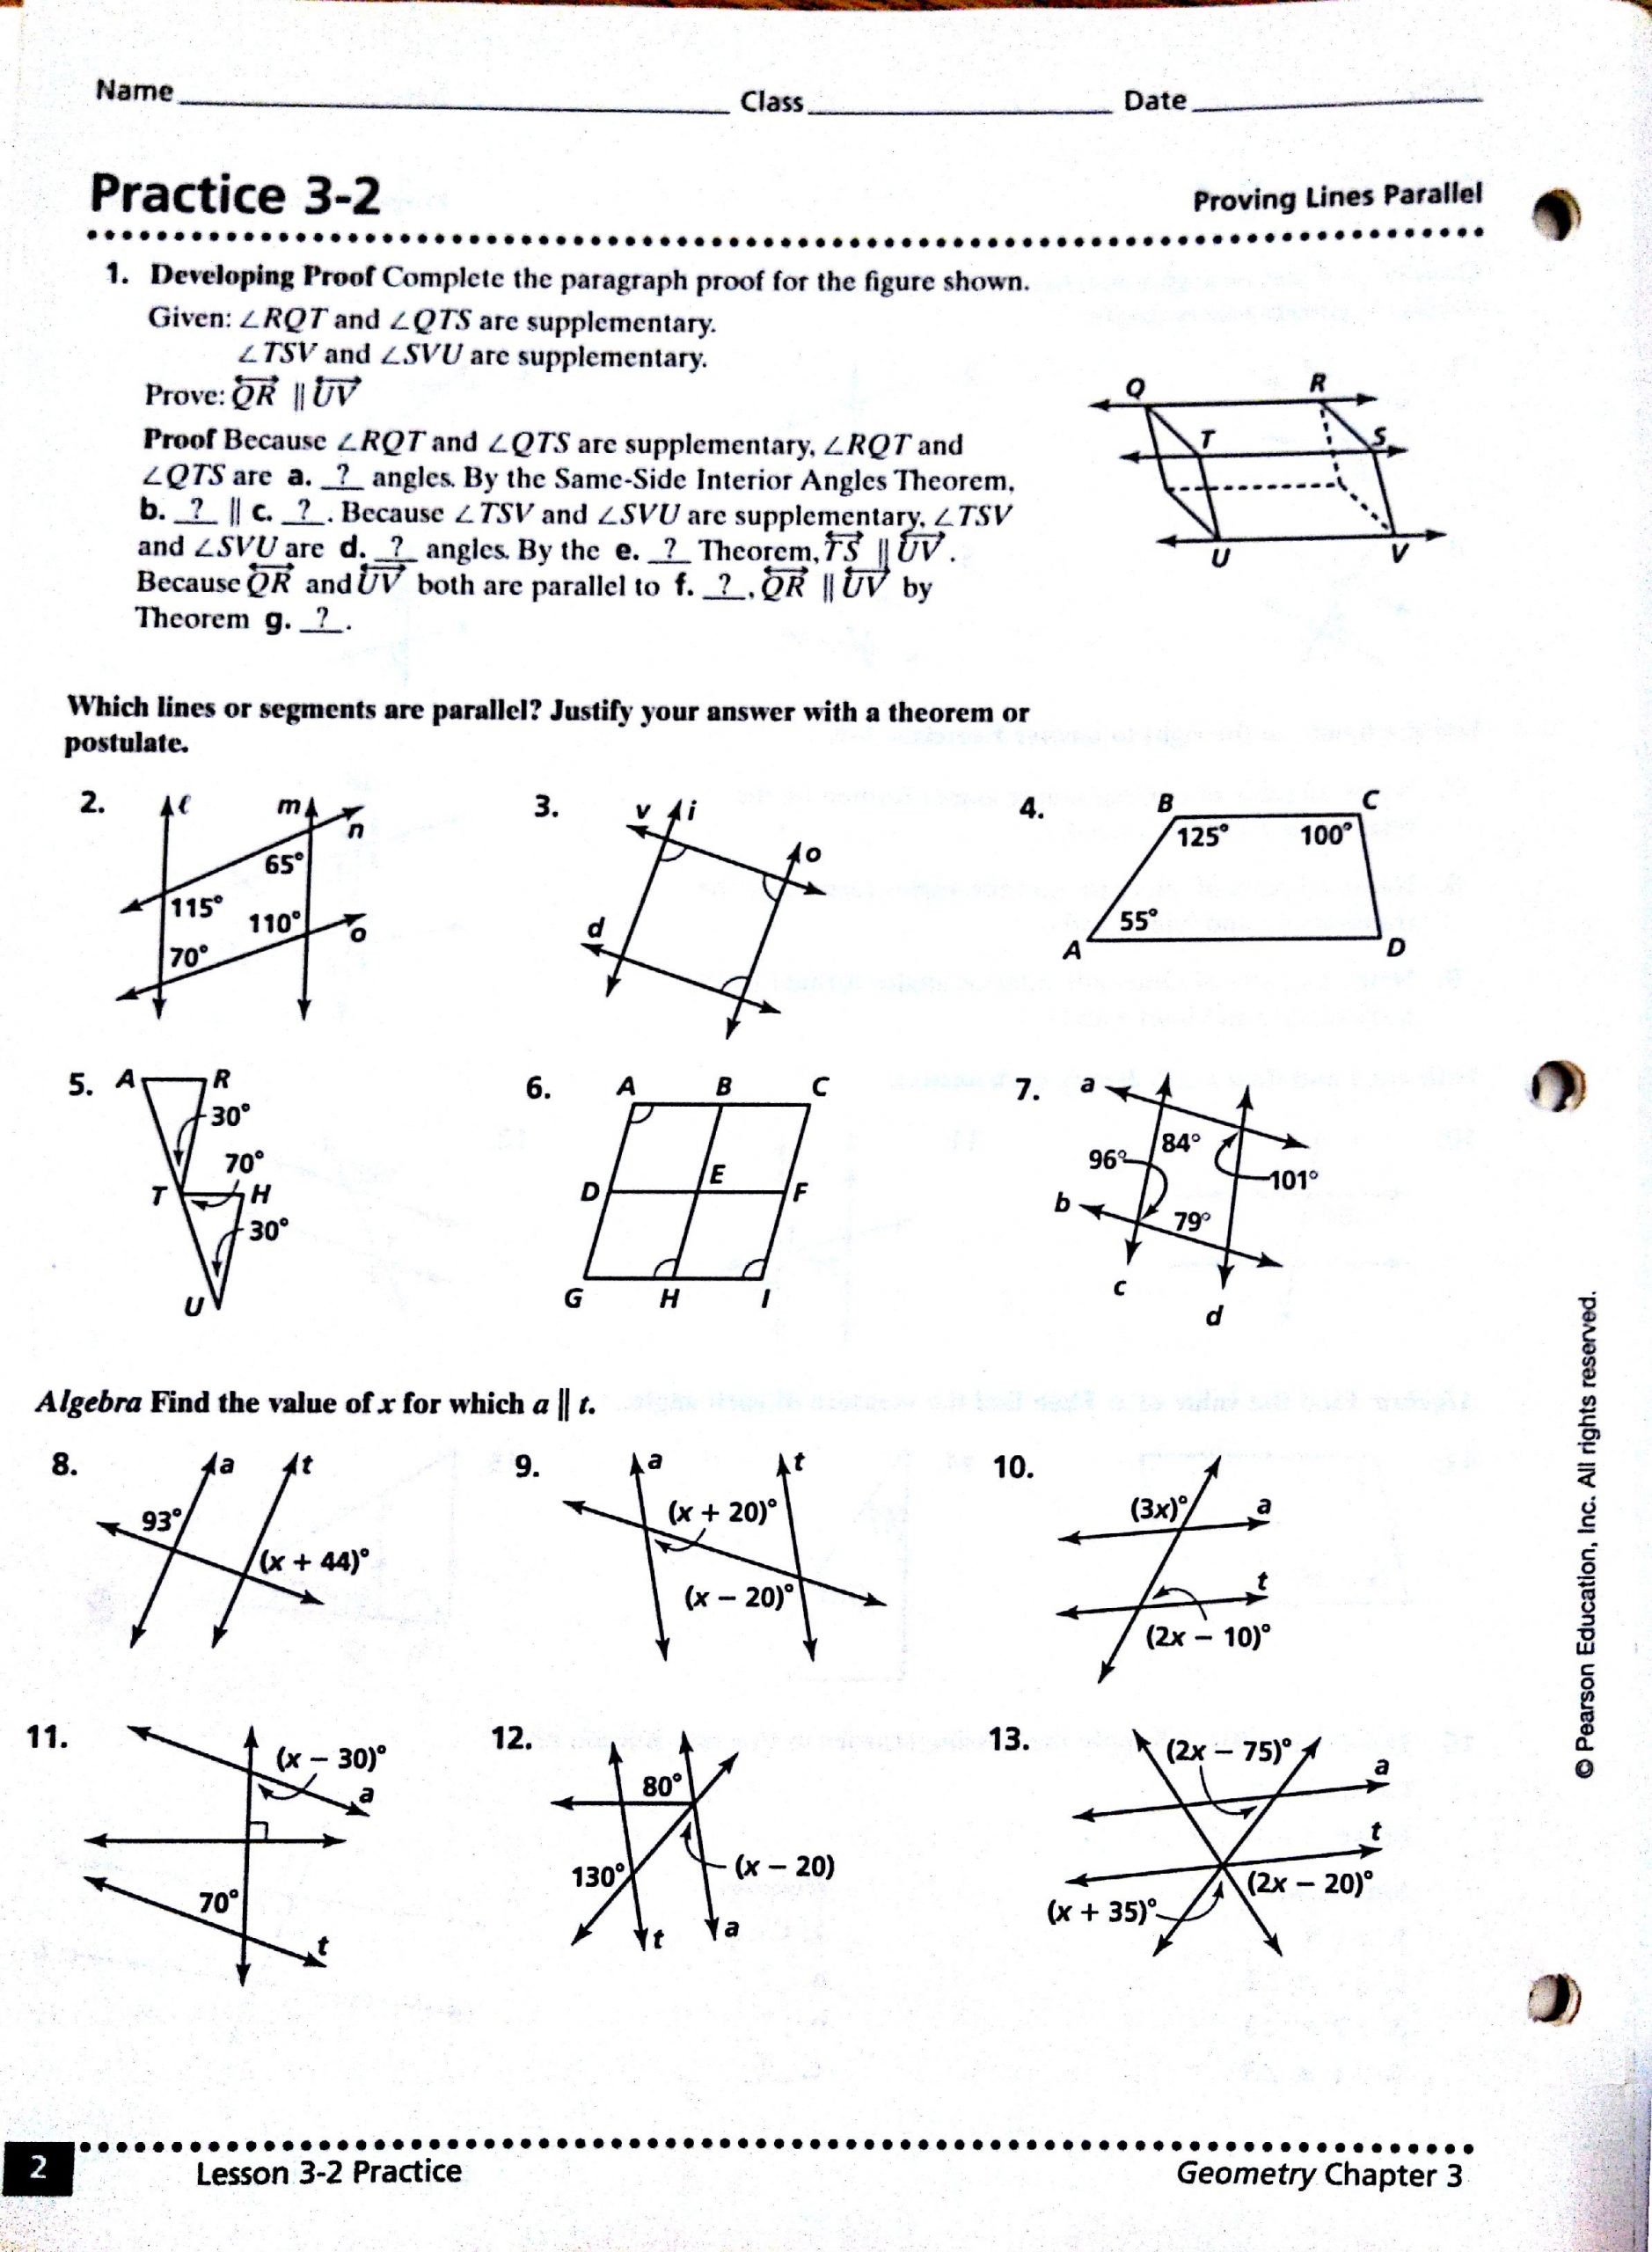 Geometric Proofs Worksheet with Answers Geometric Proof Worksheet